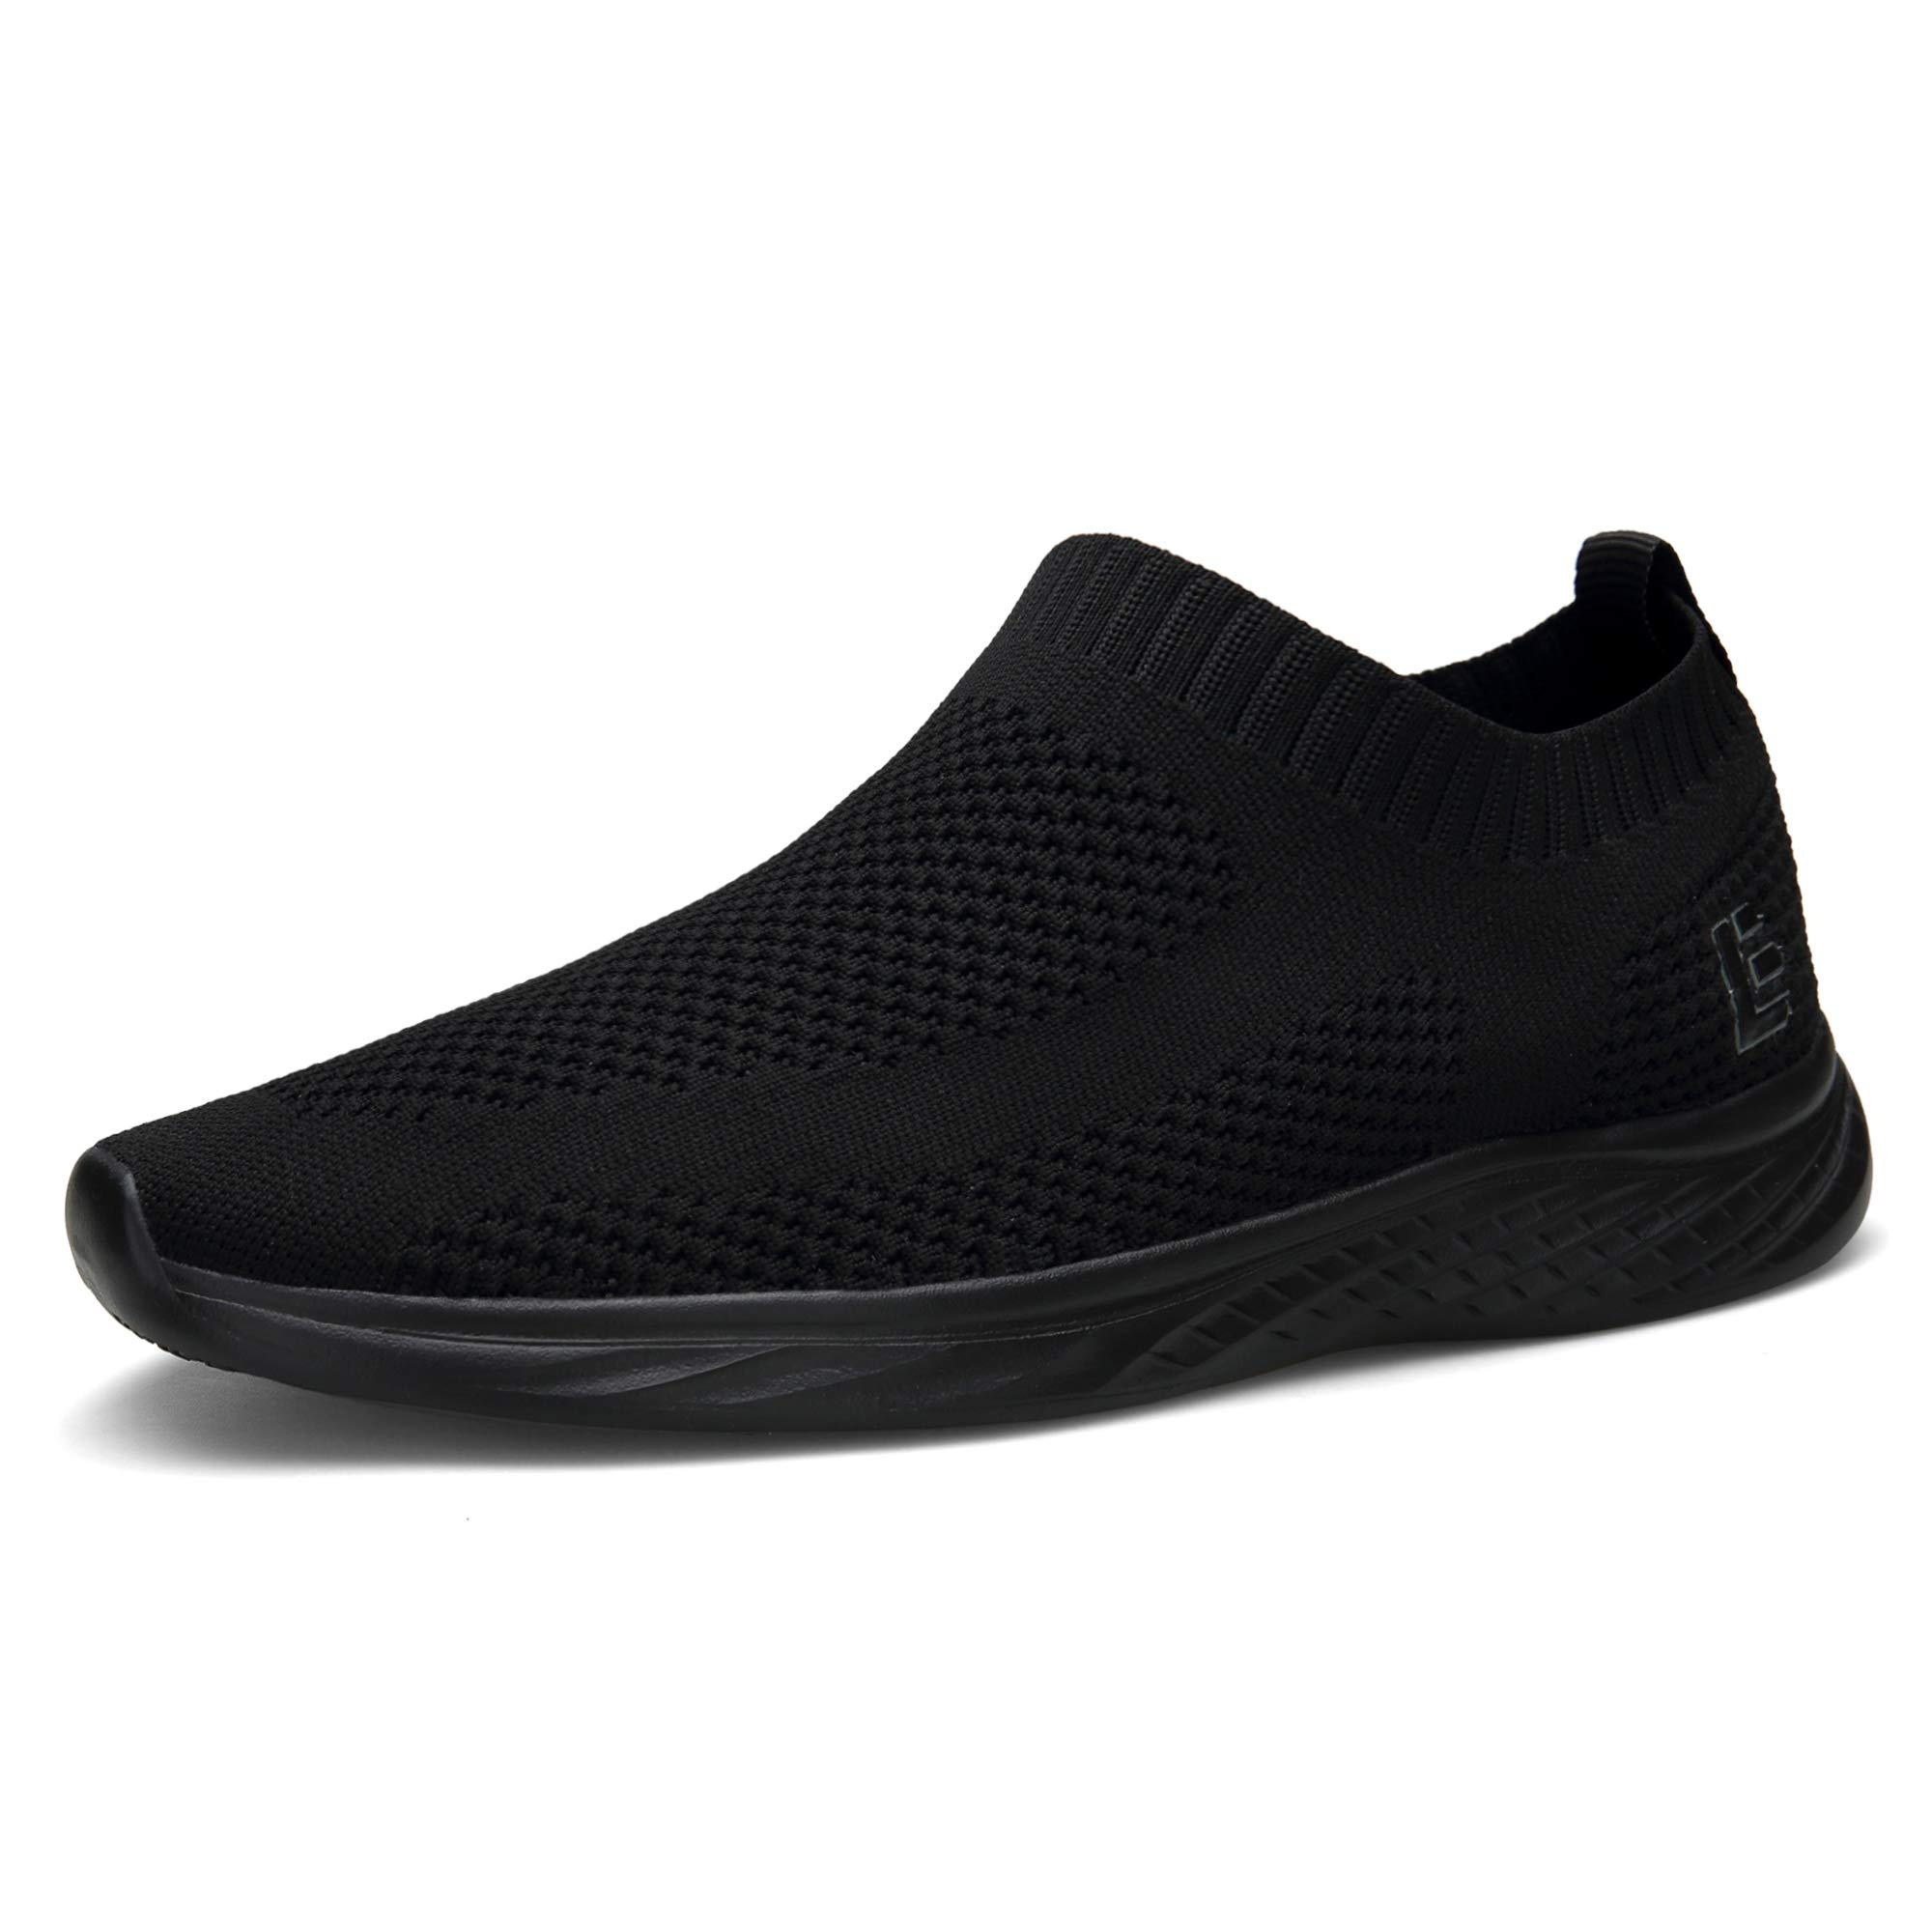 EAST LANDER Walking Shoes for Men and Women Flyknit Slip-on Sneakers Light Athletic Shoes SPT003-U2-41